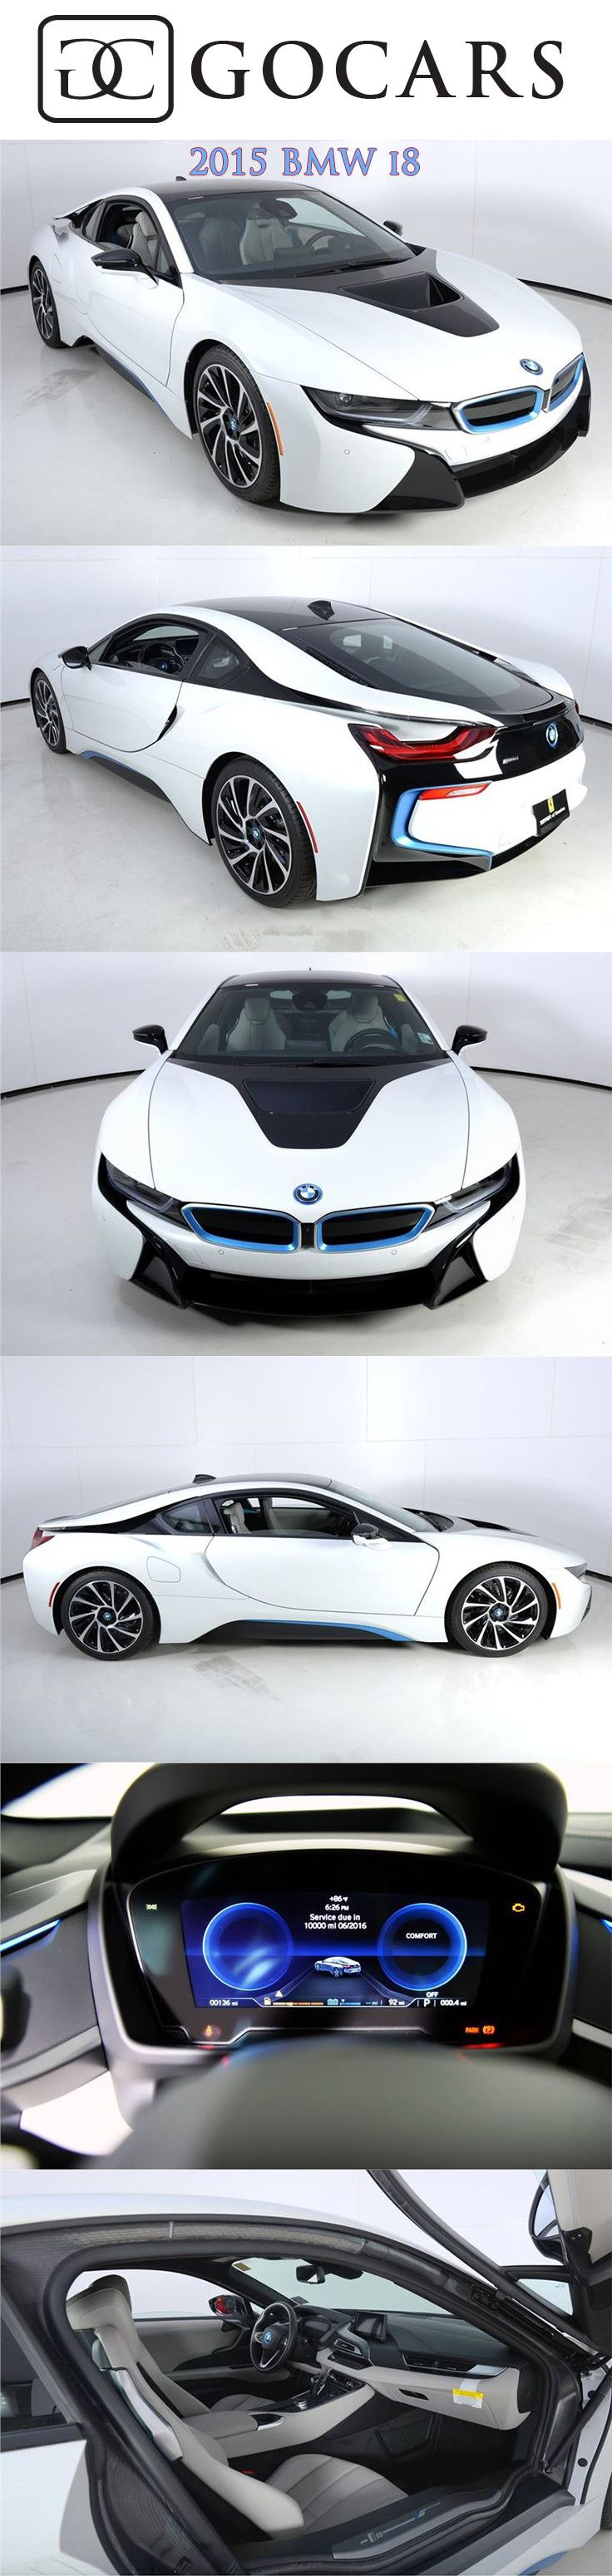 2015 BMW i8 for sale on GoCars https://www.amazon.co.uk/Baby-Car-Mirror-Shatterproof-Installation/dp/B06XHG6SSY